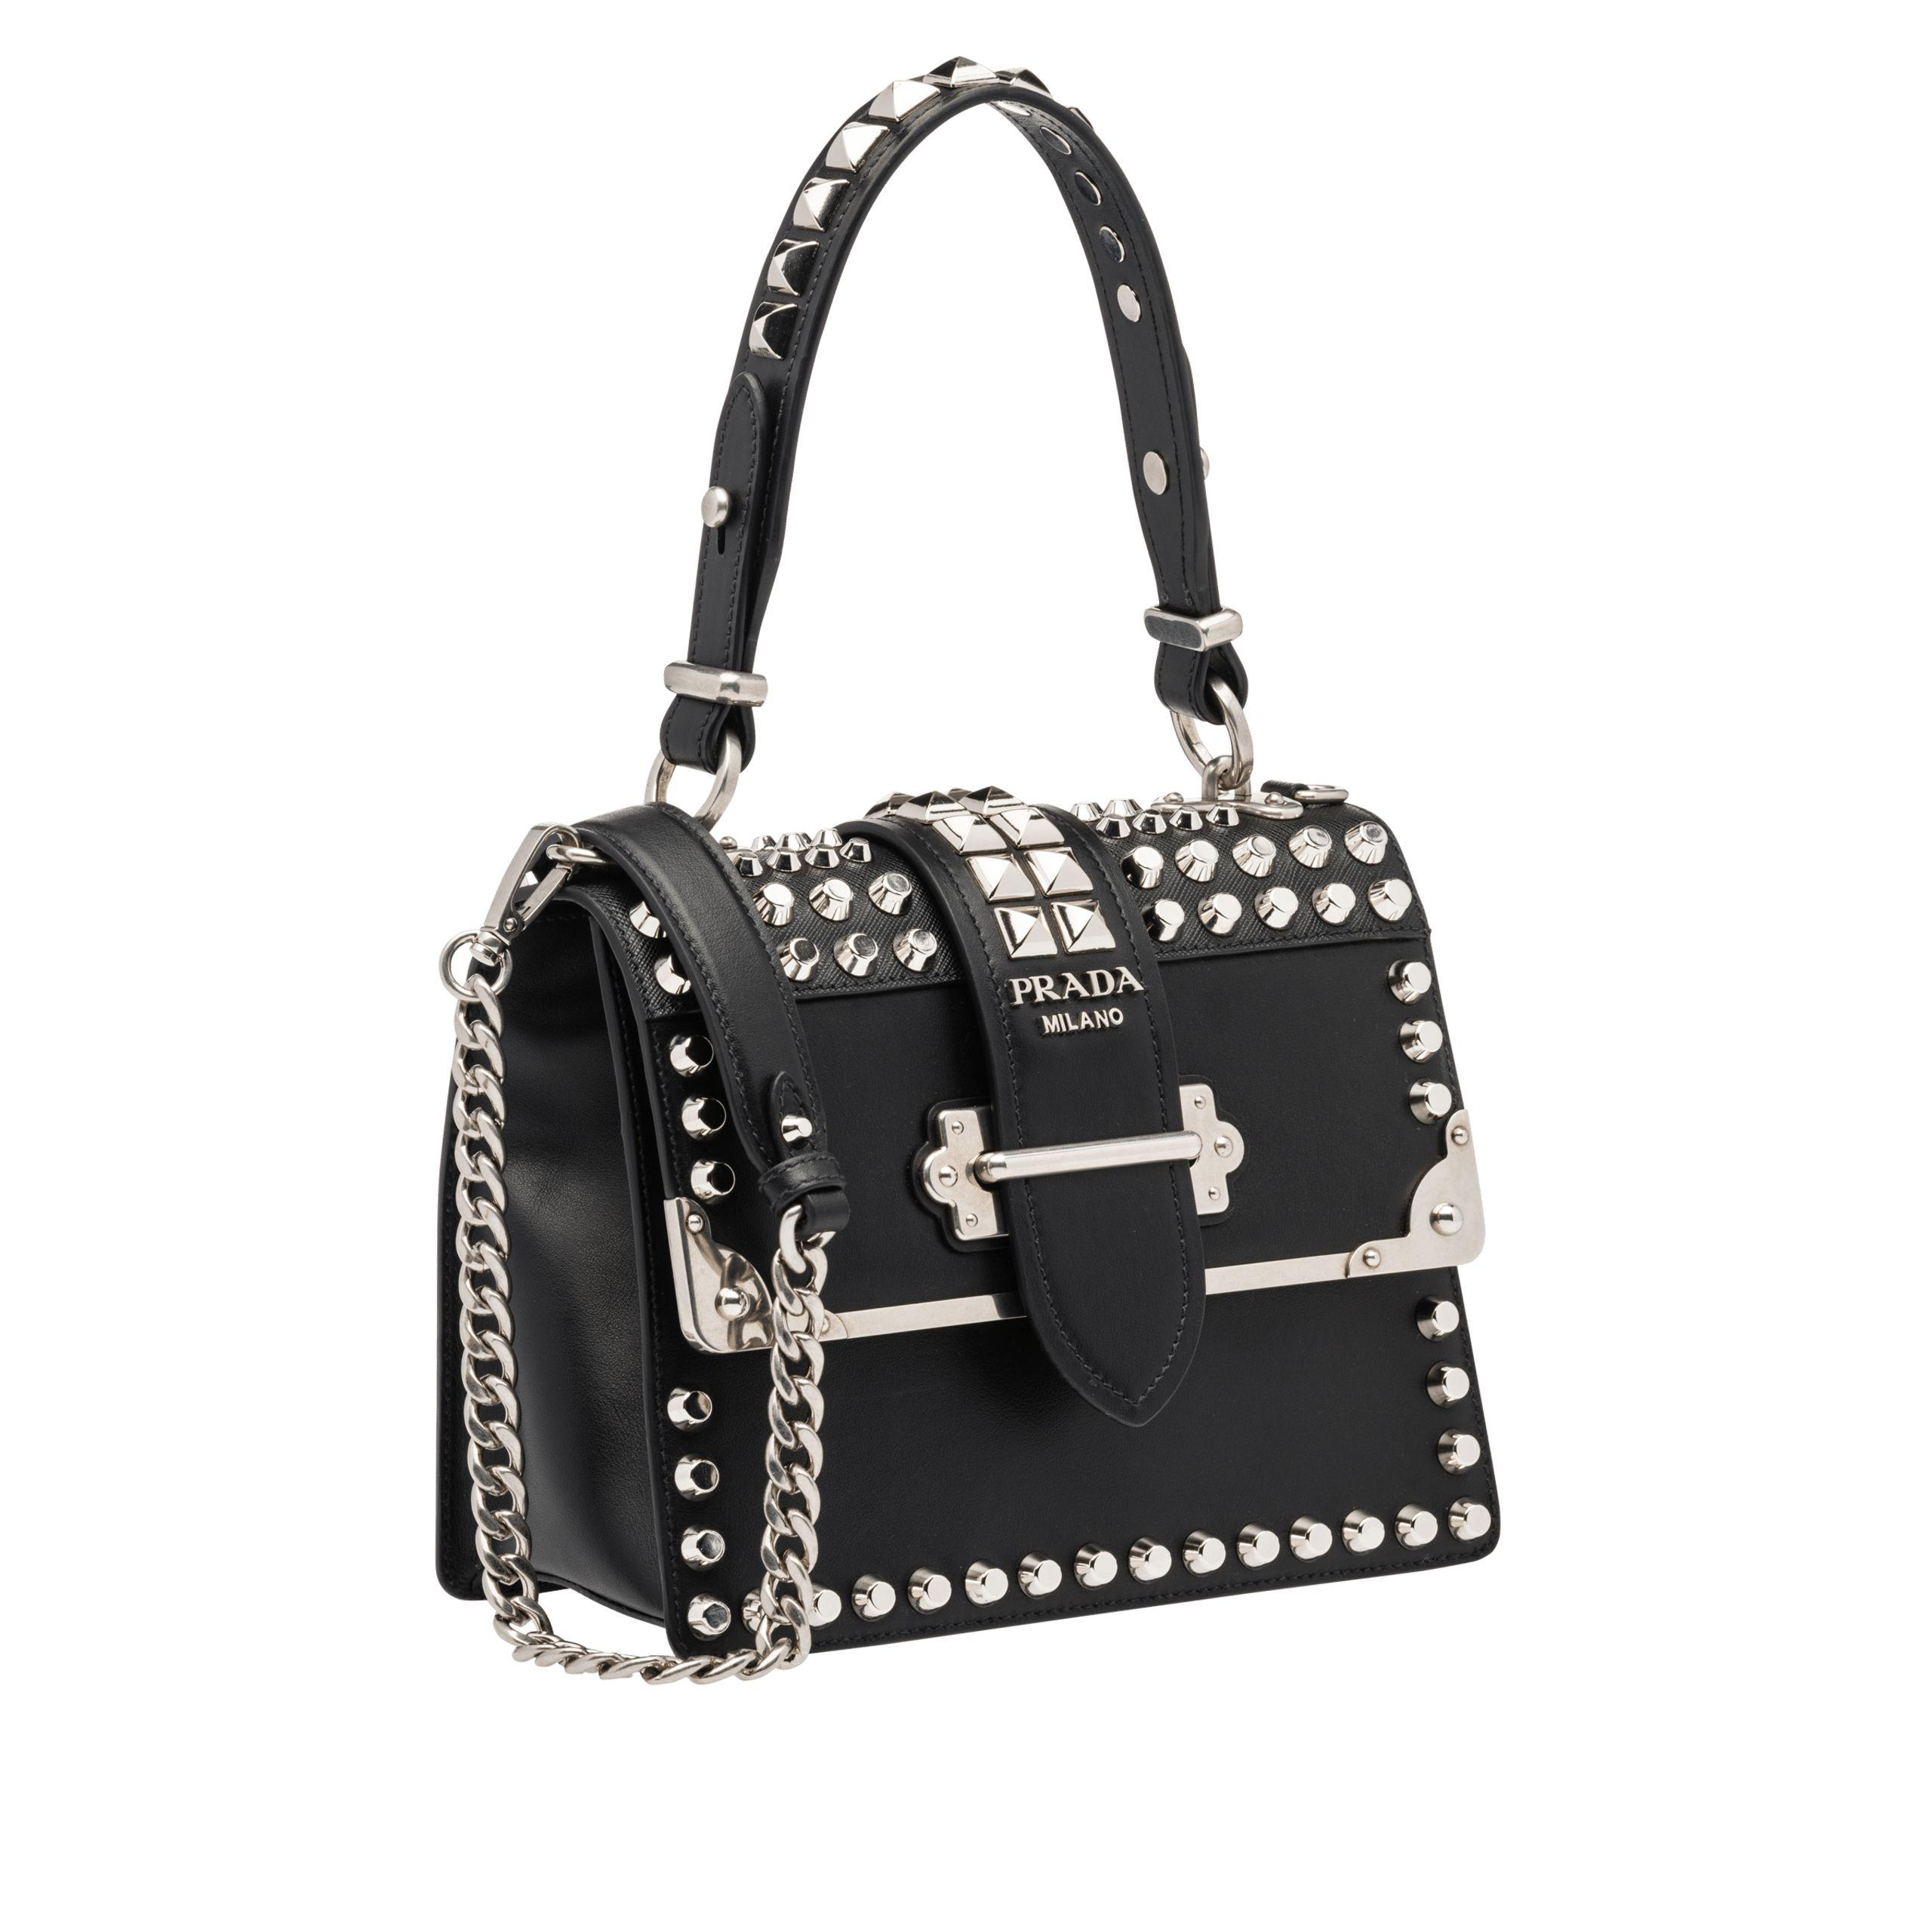 1390d669105ff9 Lyst - Prada Cahier Studded Bag in Black - Save 8.942857142857136%